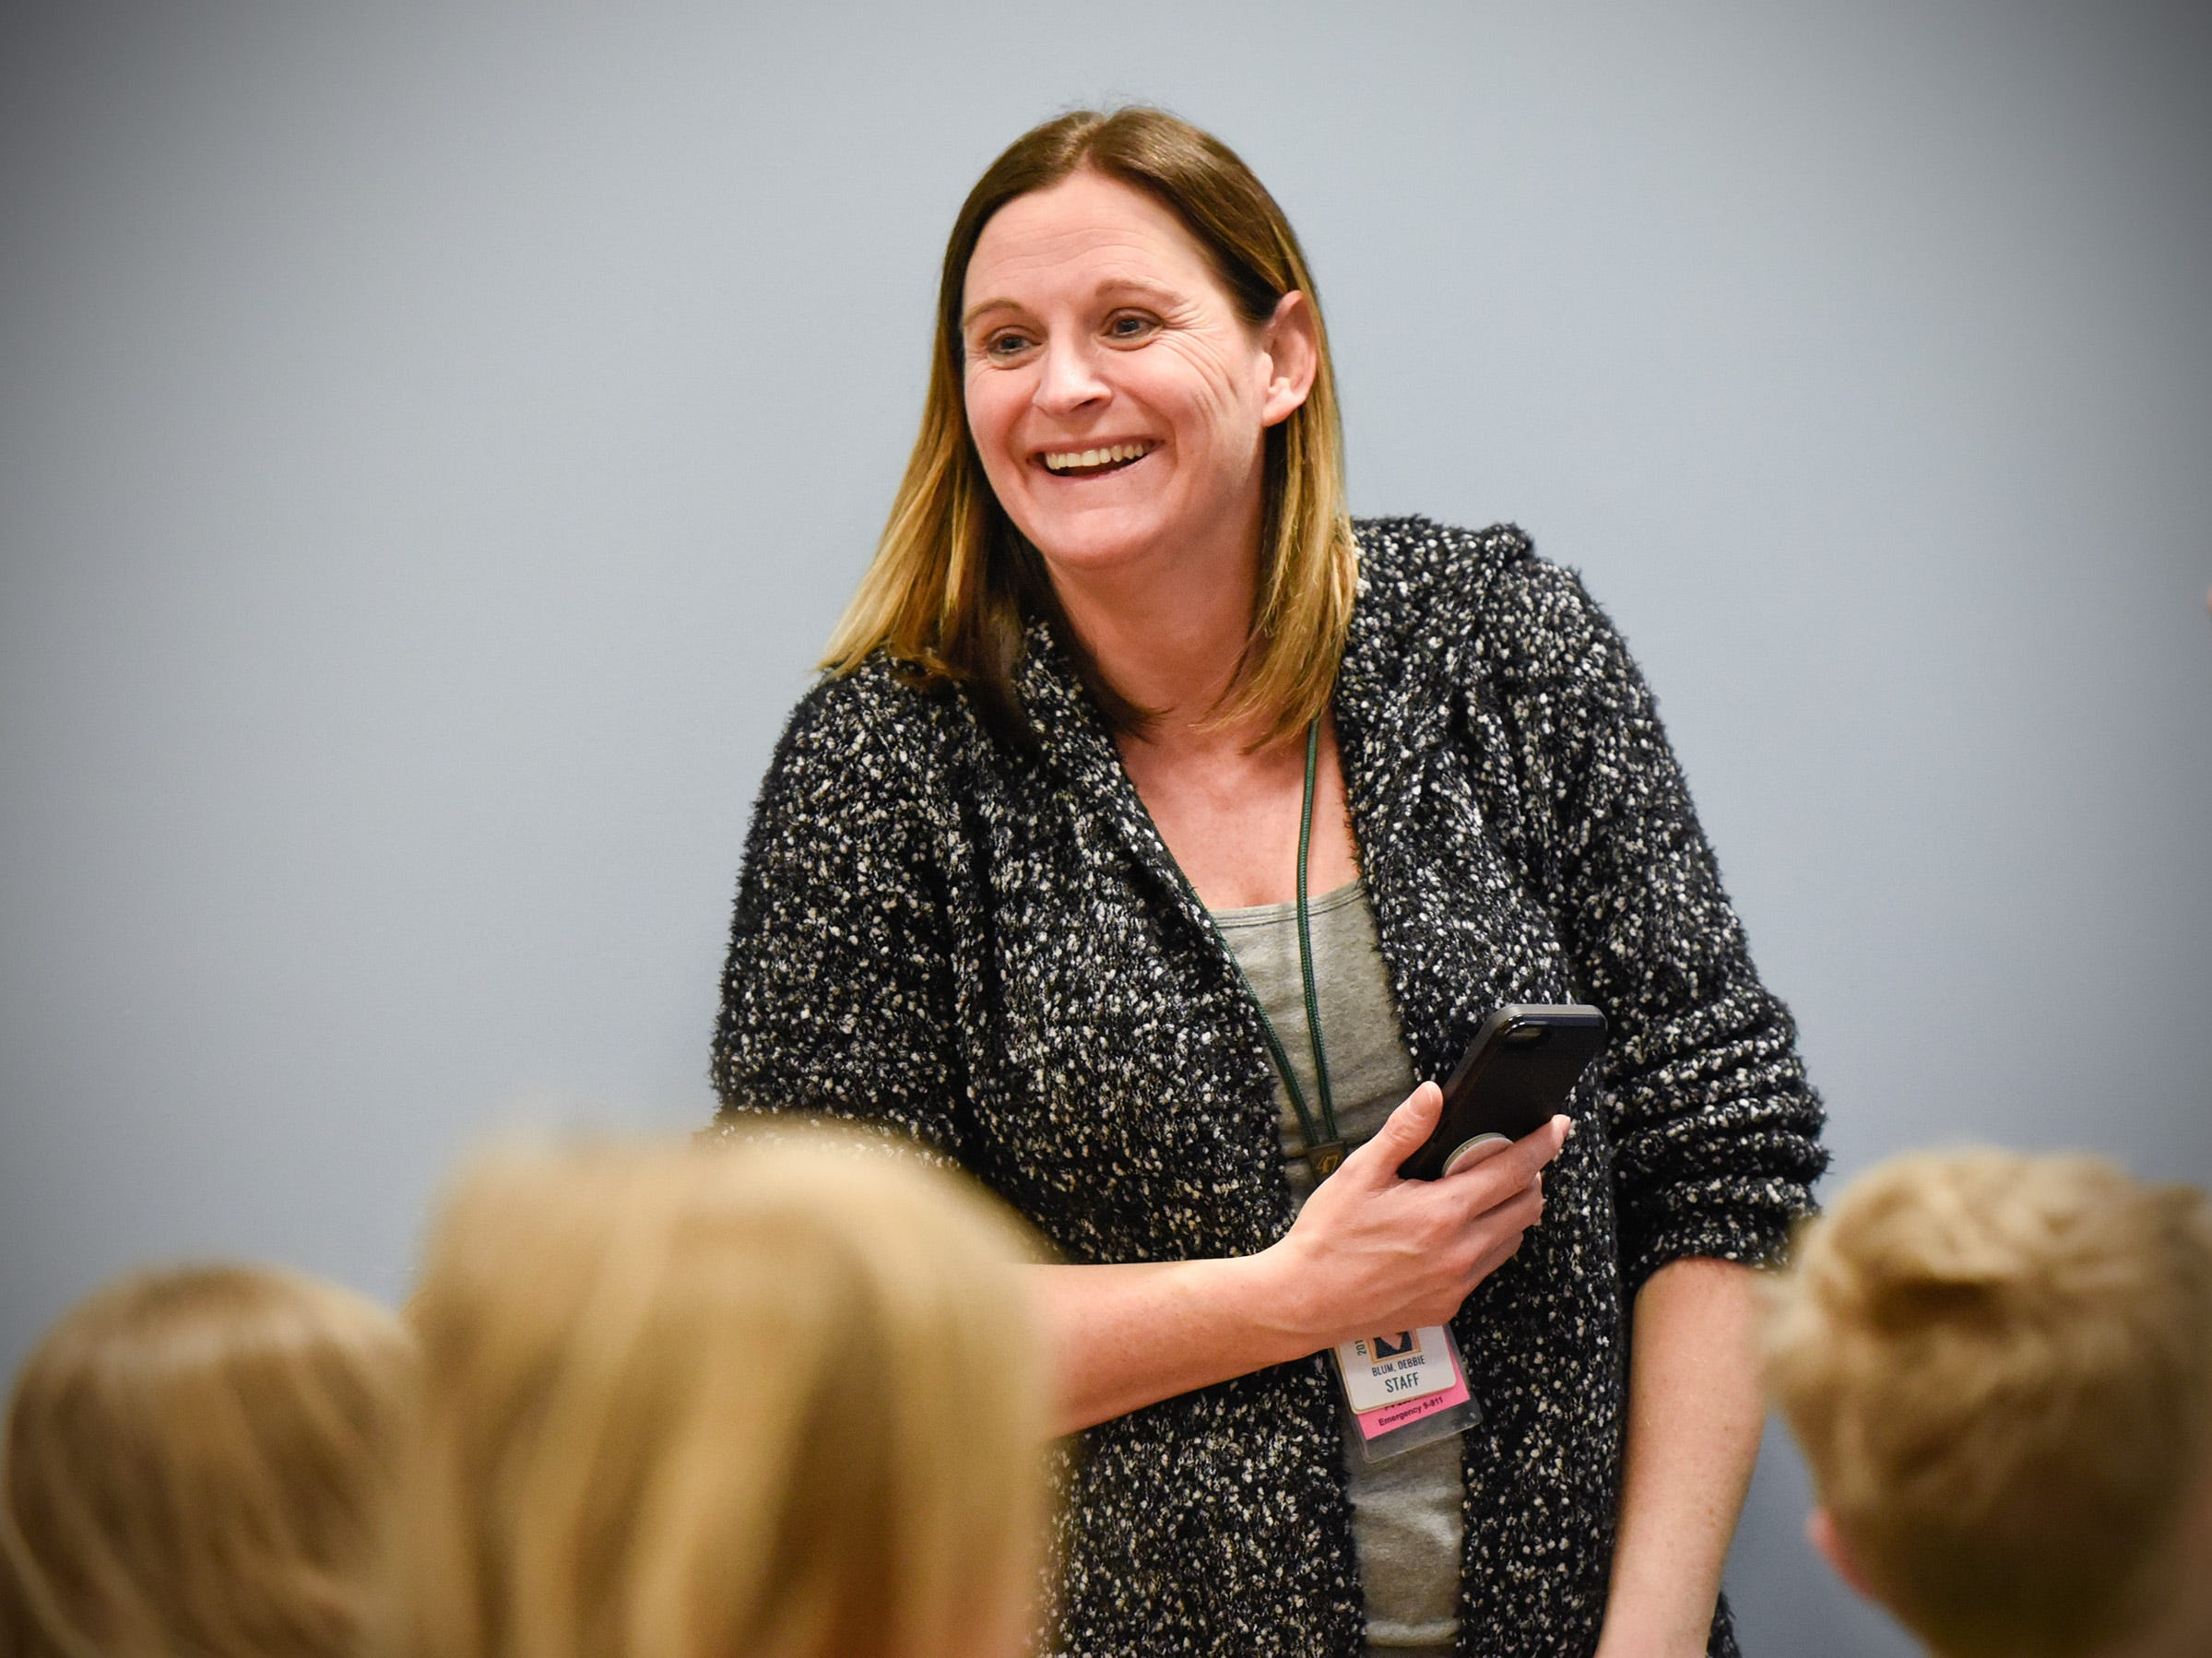 Teacher Deb Blum moved her third grade classroom to an area of the learning resource center Tuesday, Jan. 15, after a fire damaged classrooms at Pleasantview Elementary School in Sauk Rapids.